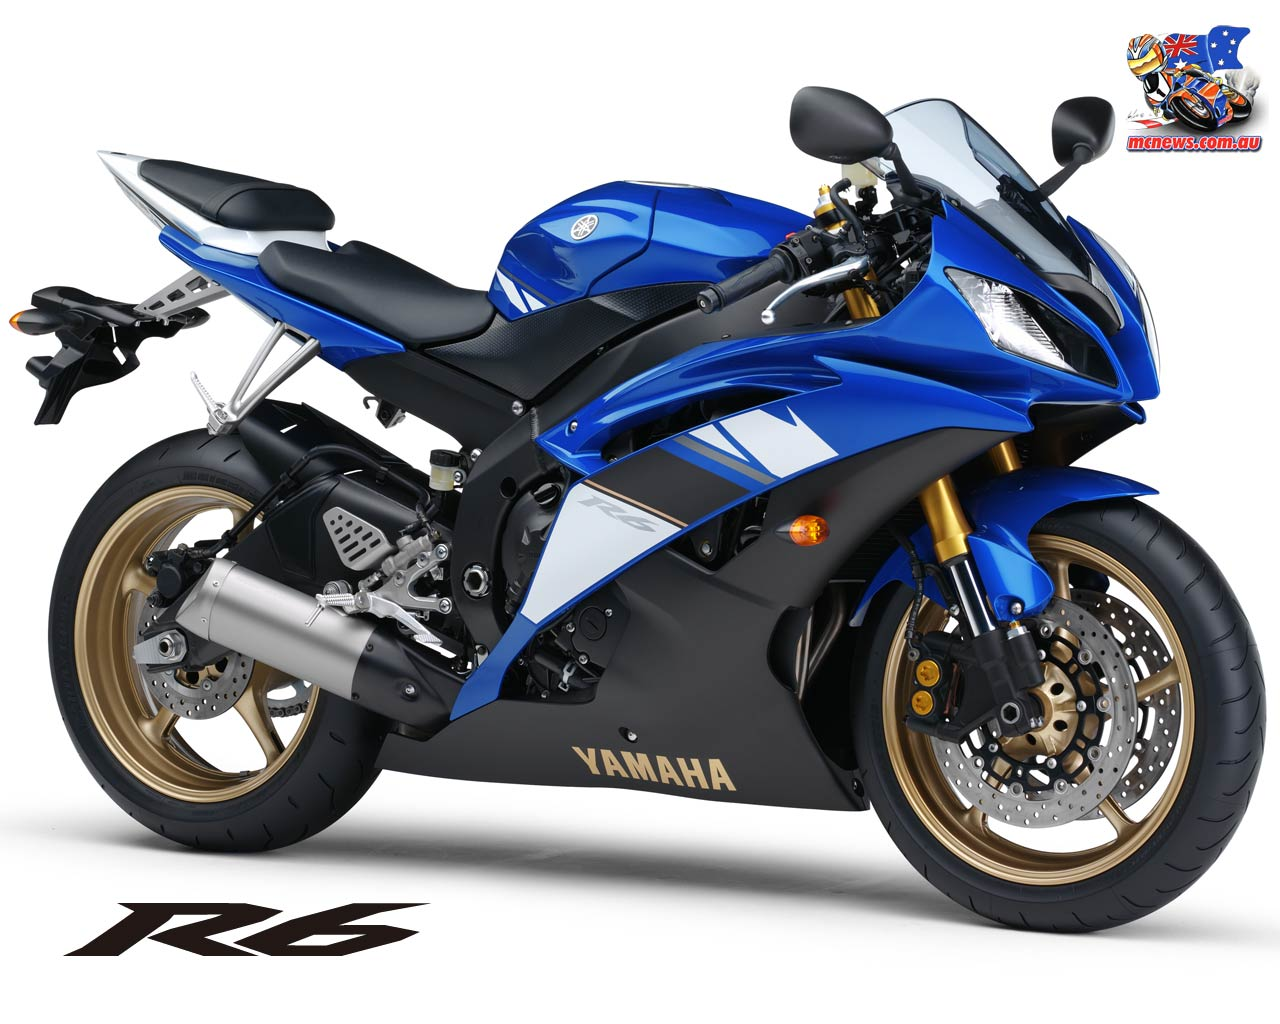 Yamaha R6 Wallpaper 14245 Hd Wallpapers in Bikes   Imagescicom 1280x1024